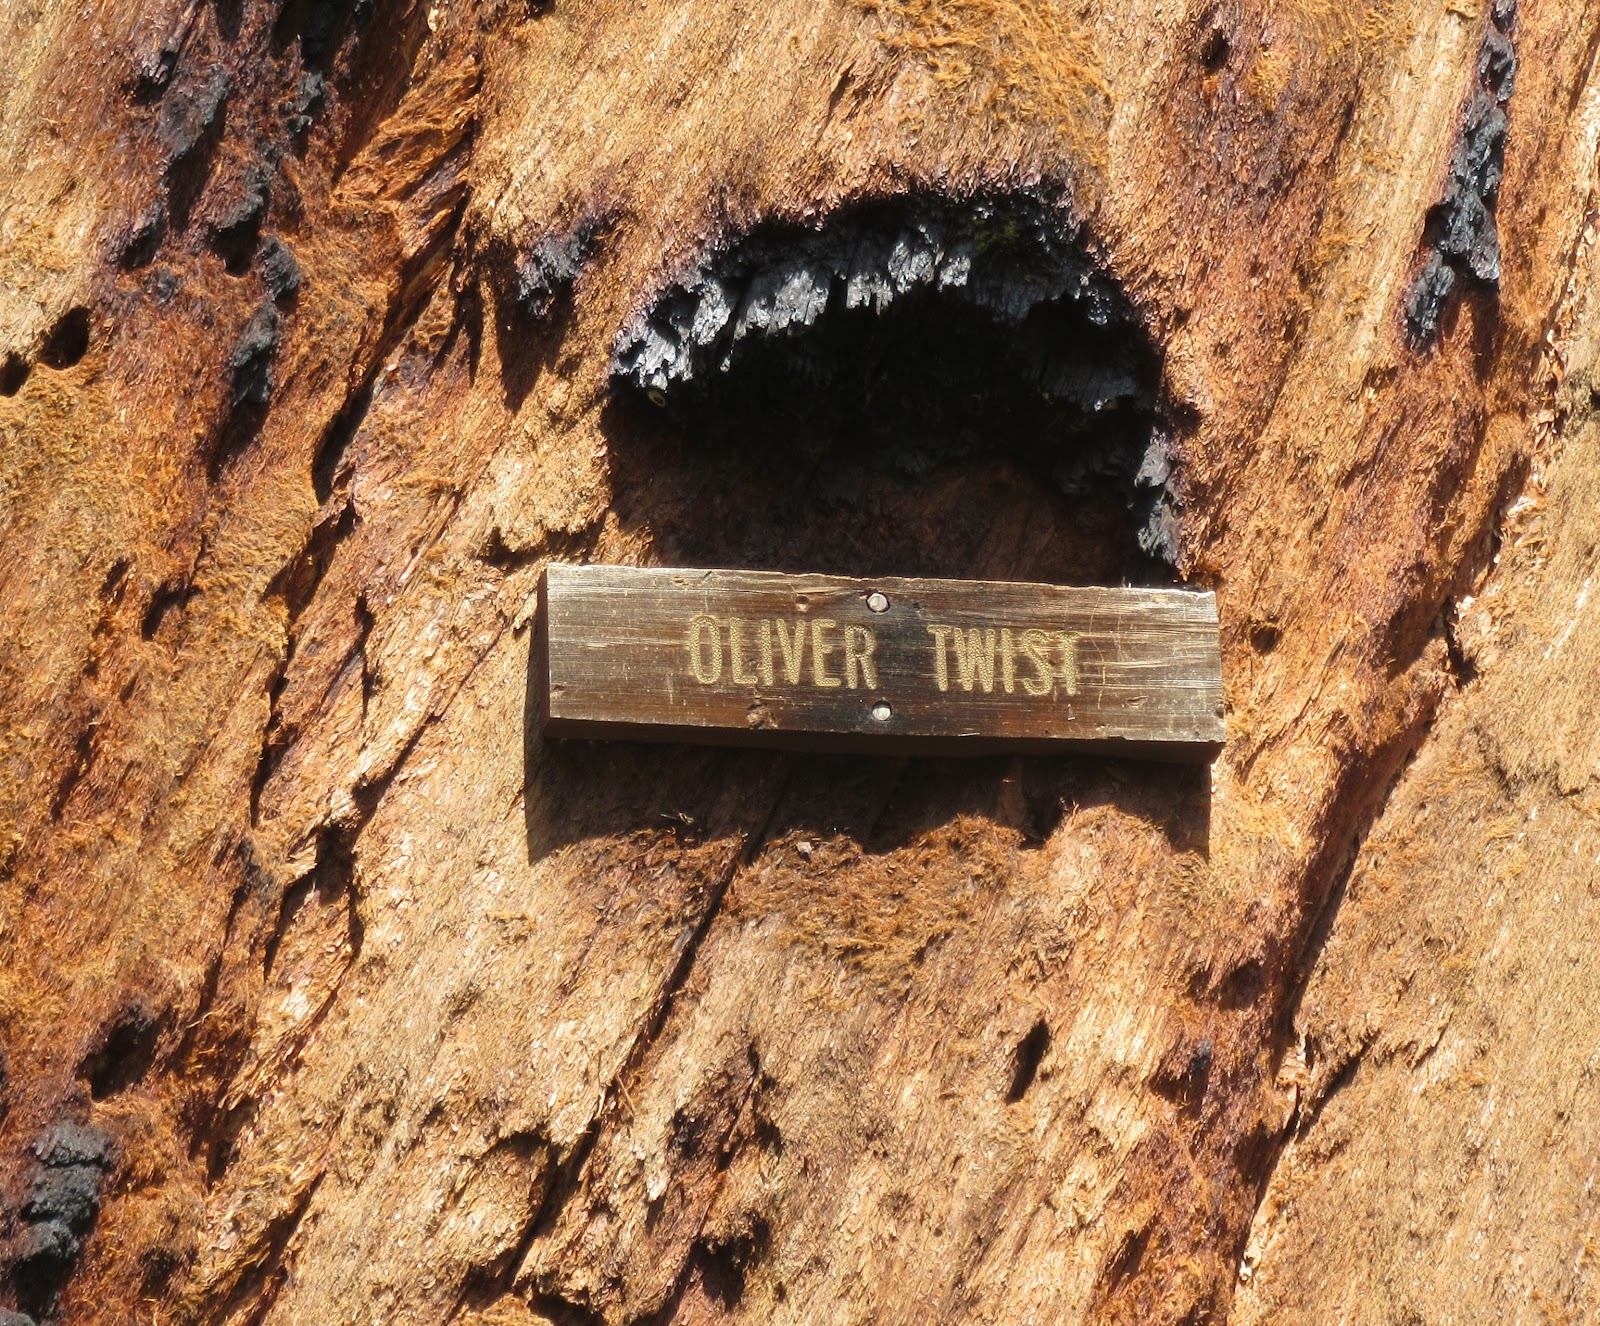 Bike climb  Bear Creek Road - Oliver Twist giant sequoia sign